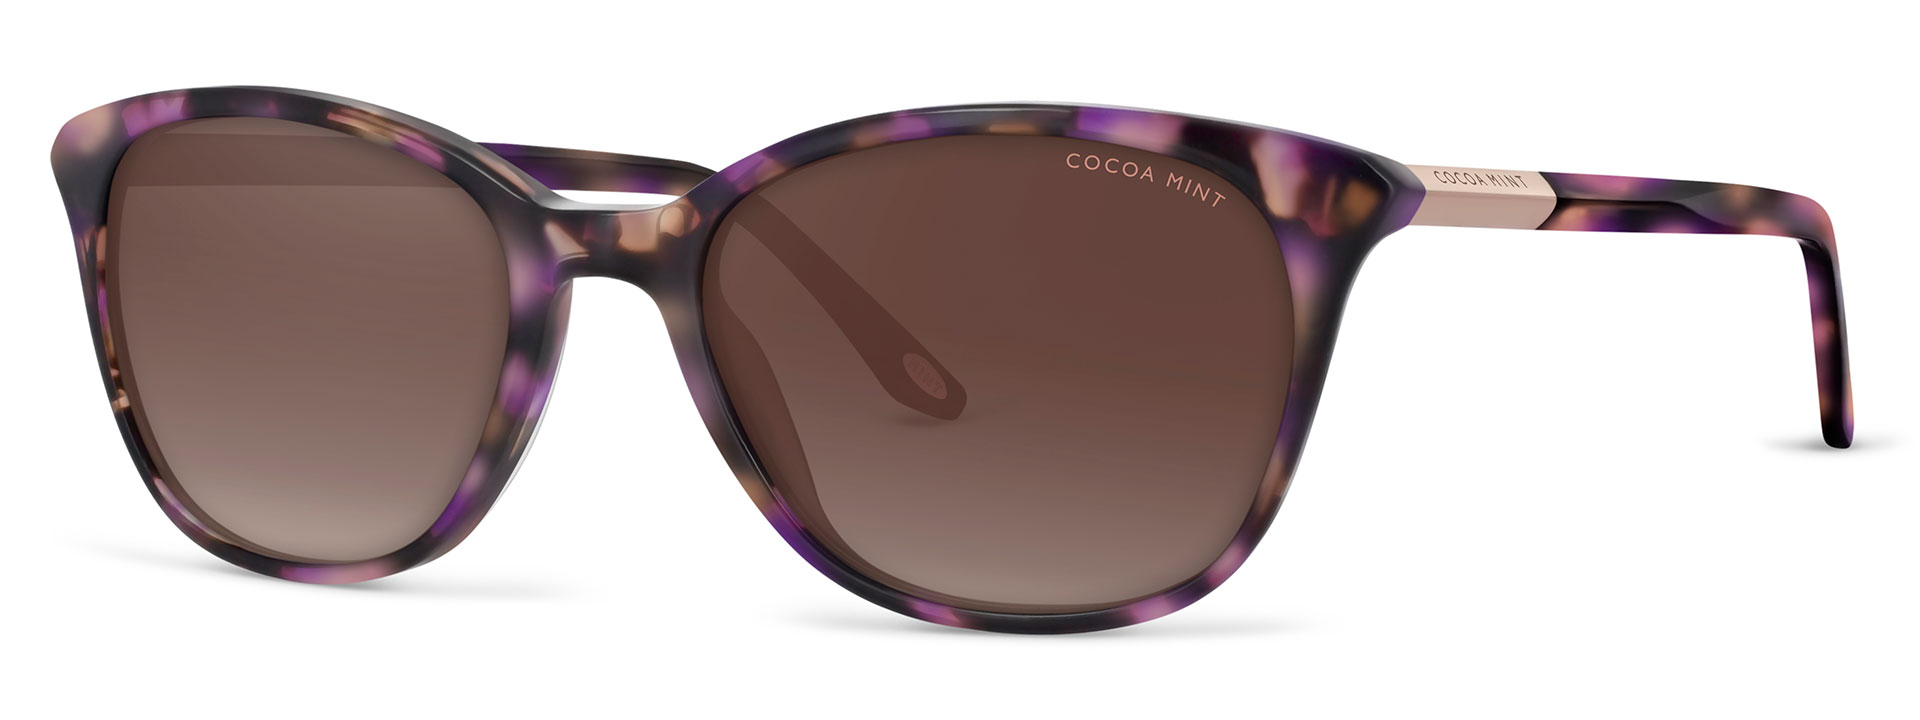 Cocoa Mint Sun Glasses - Purple Tortoiseshell - CMS2060-C1